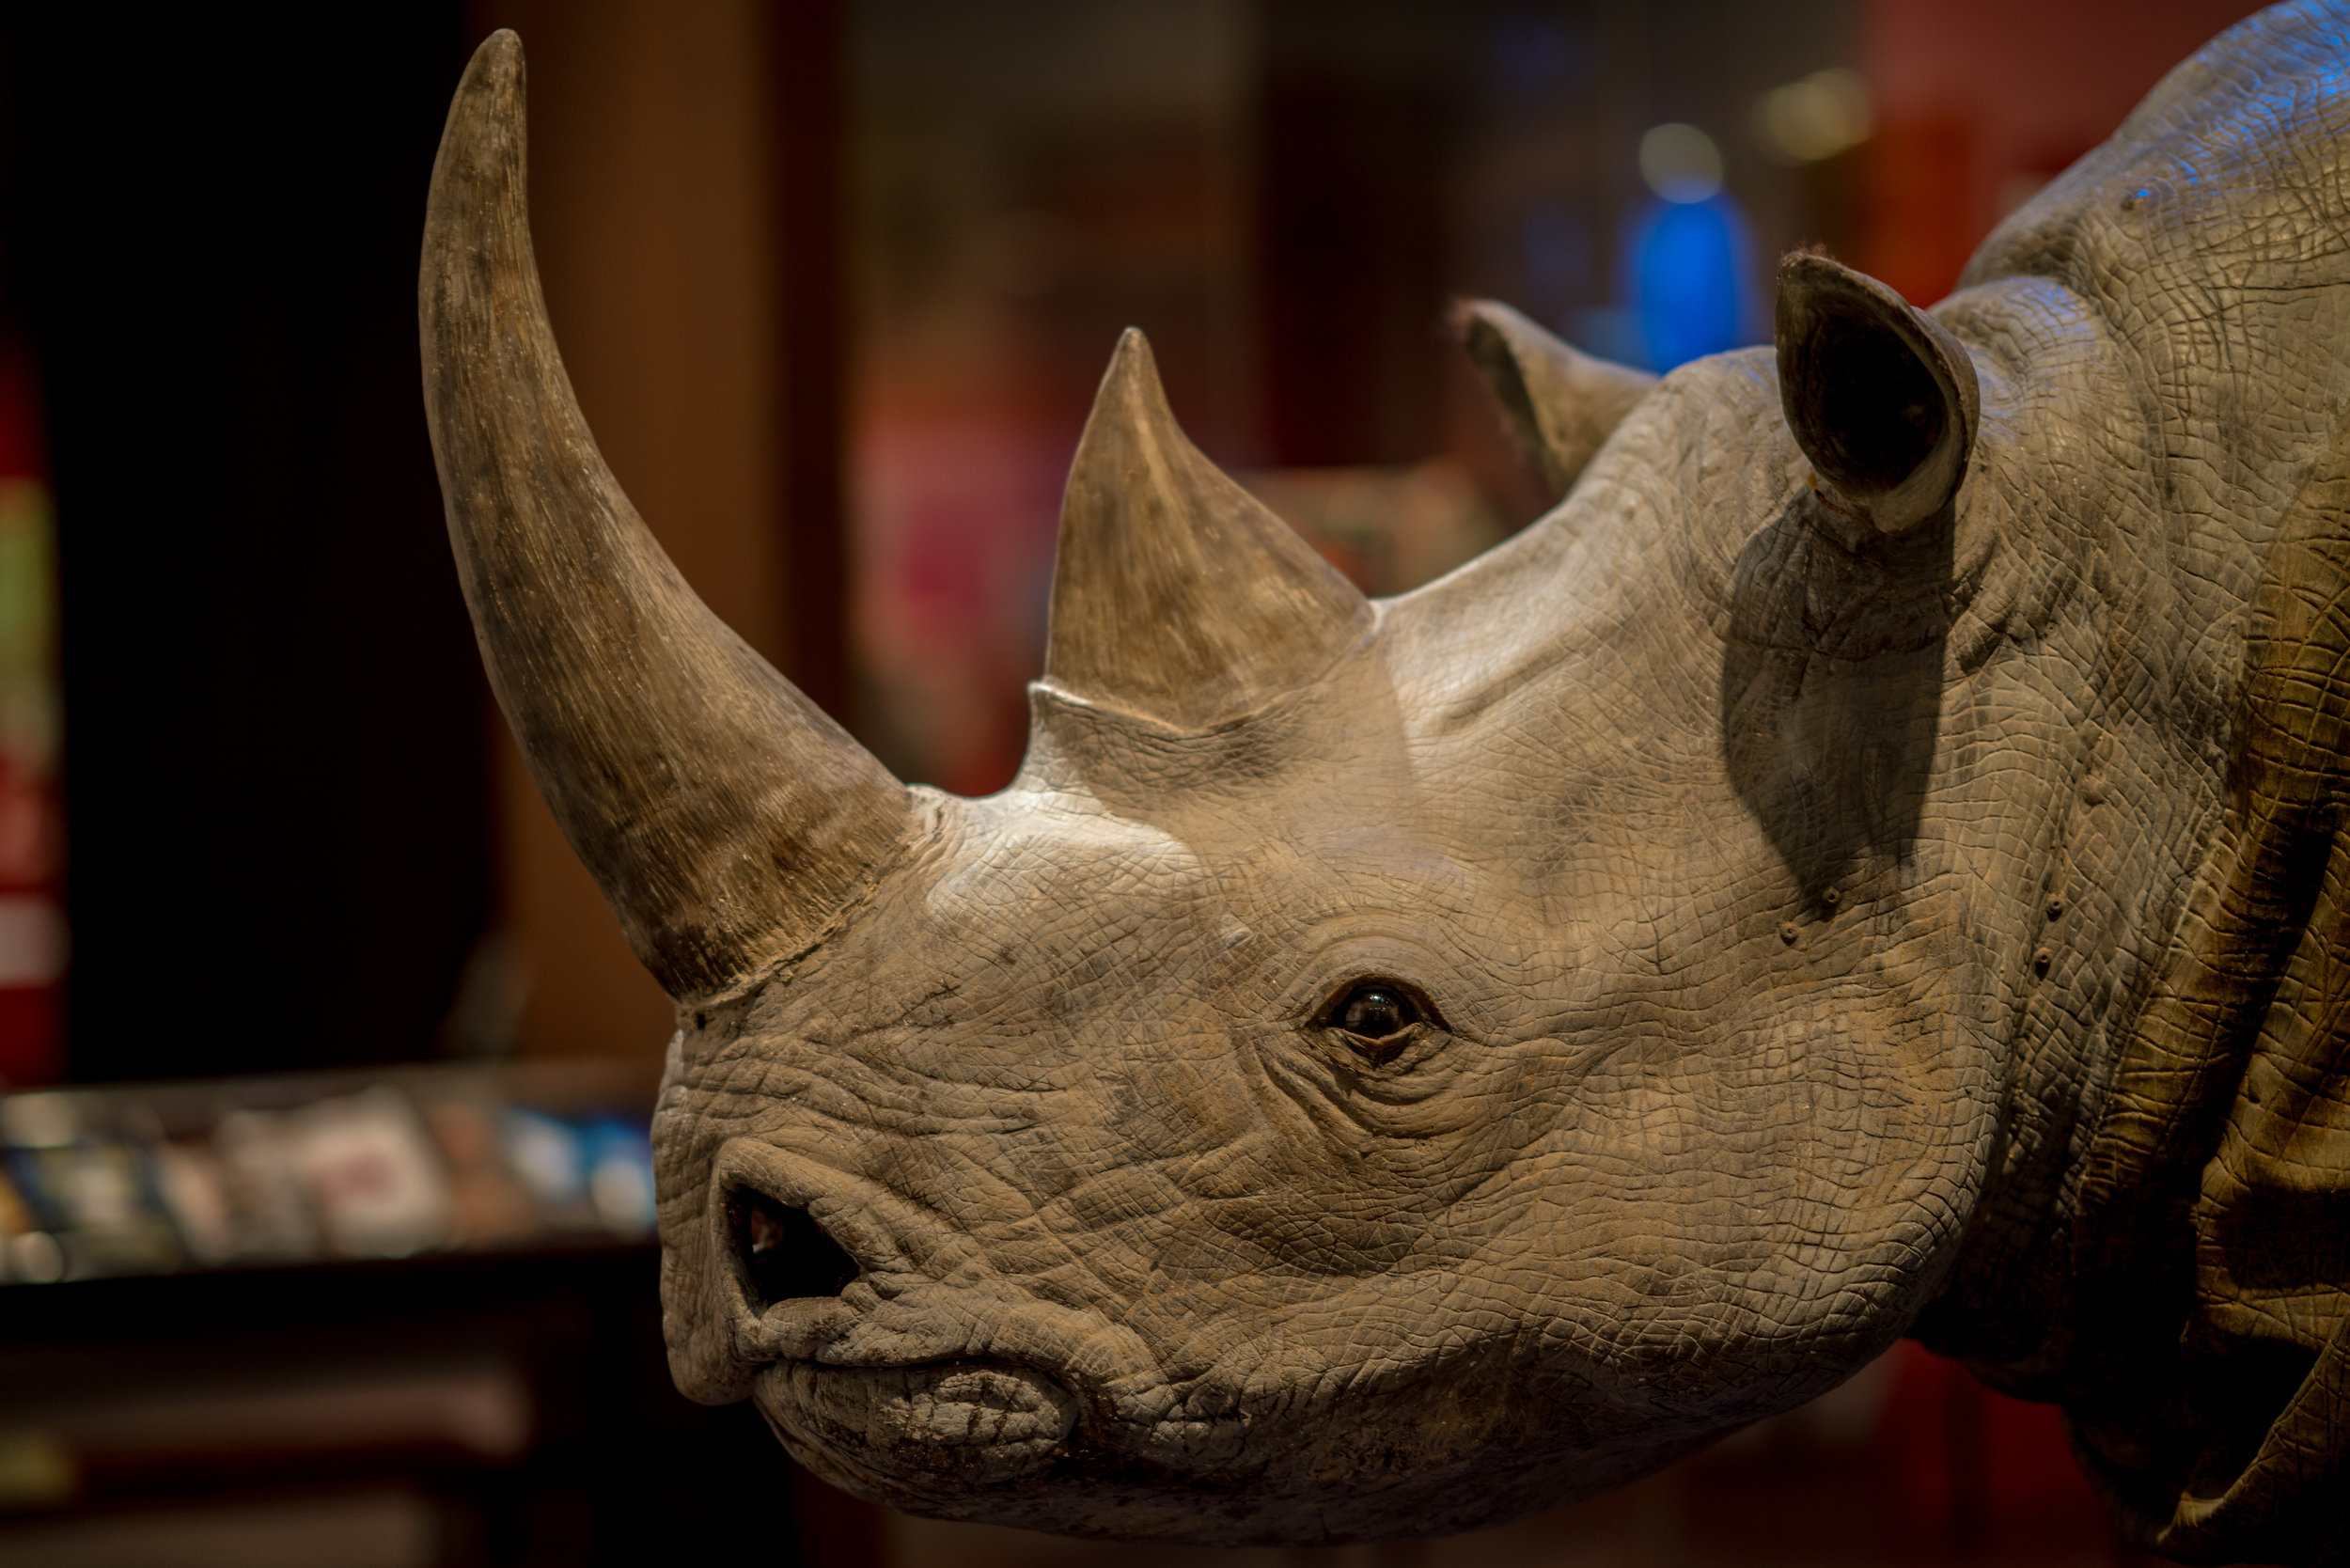 Rhino  85mm, f1.4, 1/10 iso 100, yes these settings are ridiculous and its not particularly sharp.